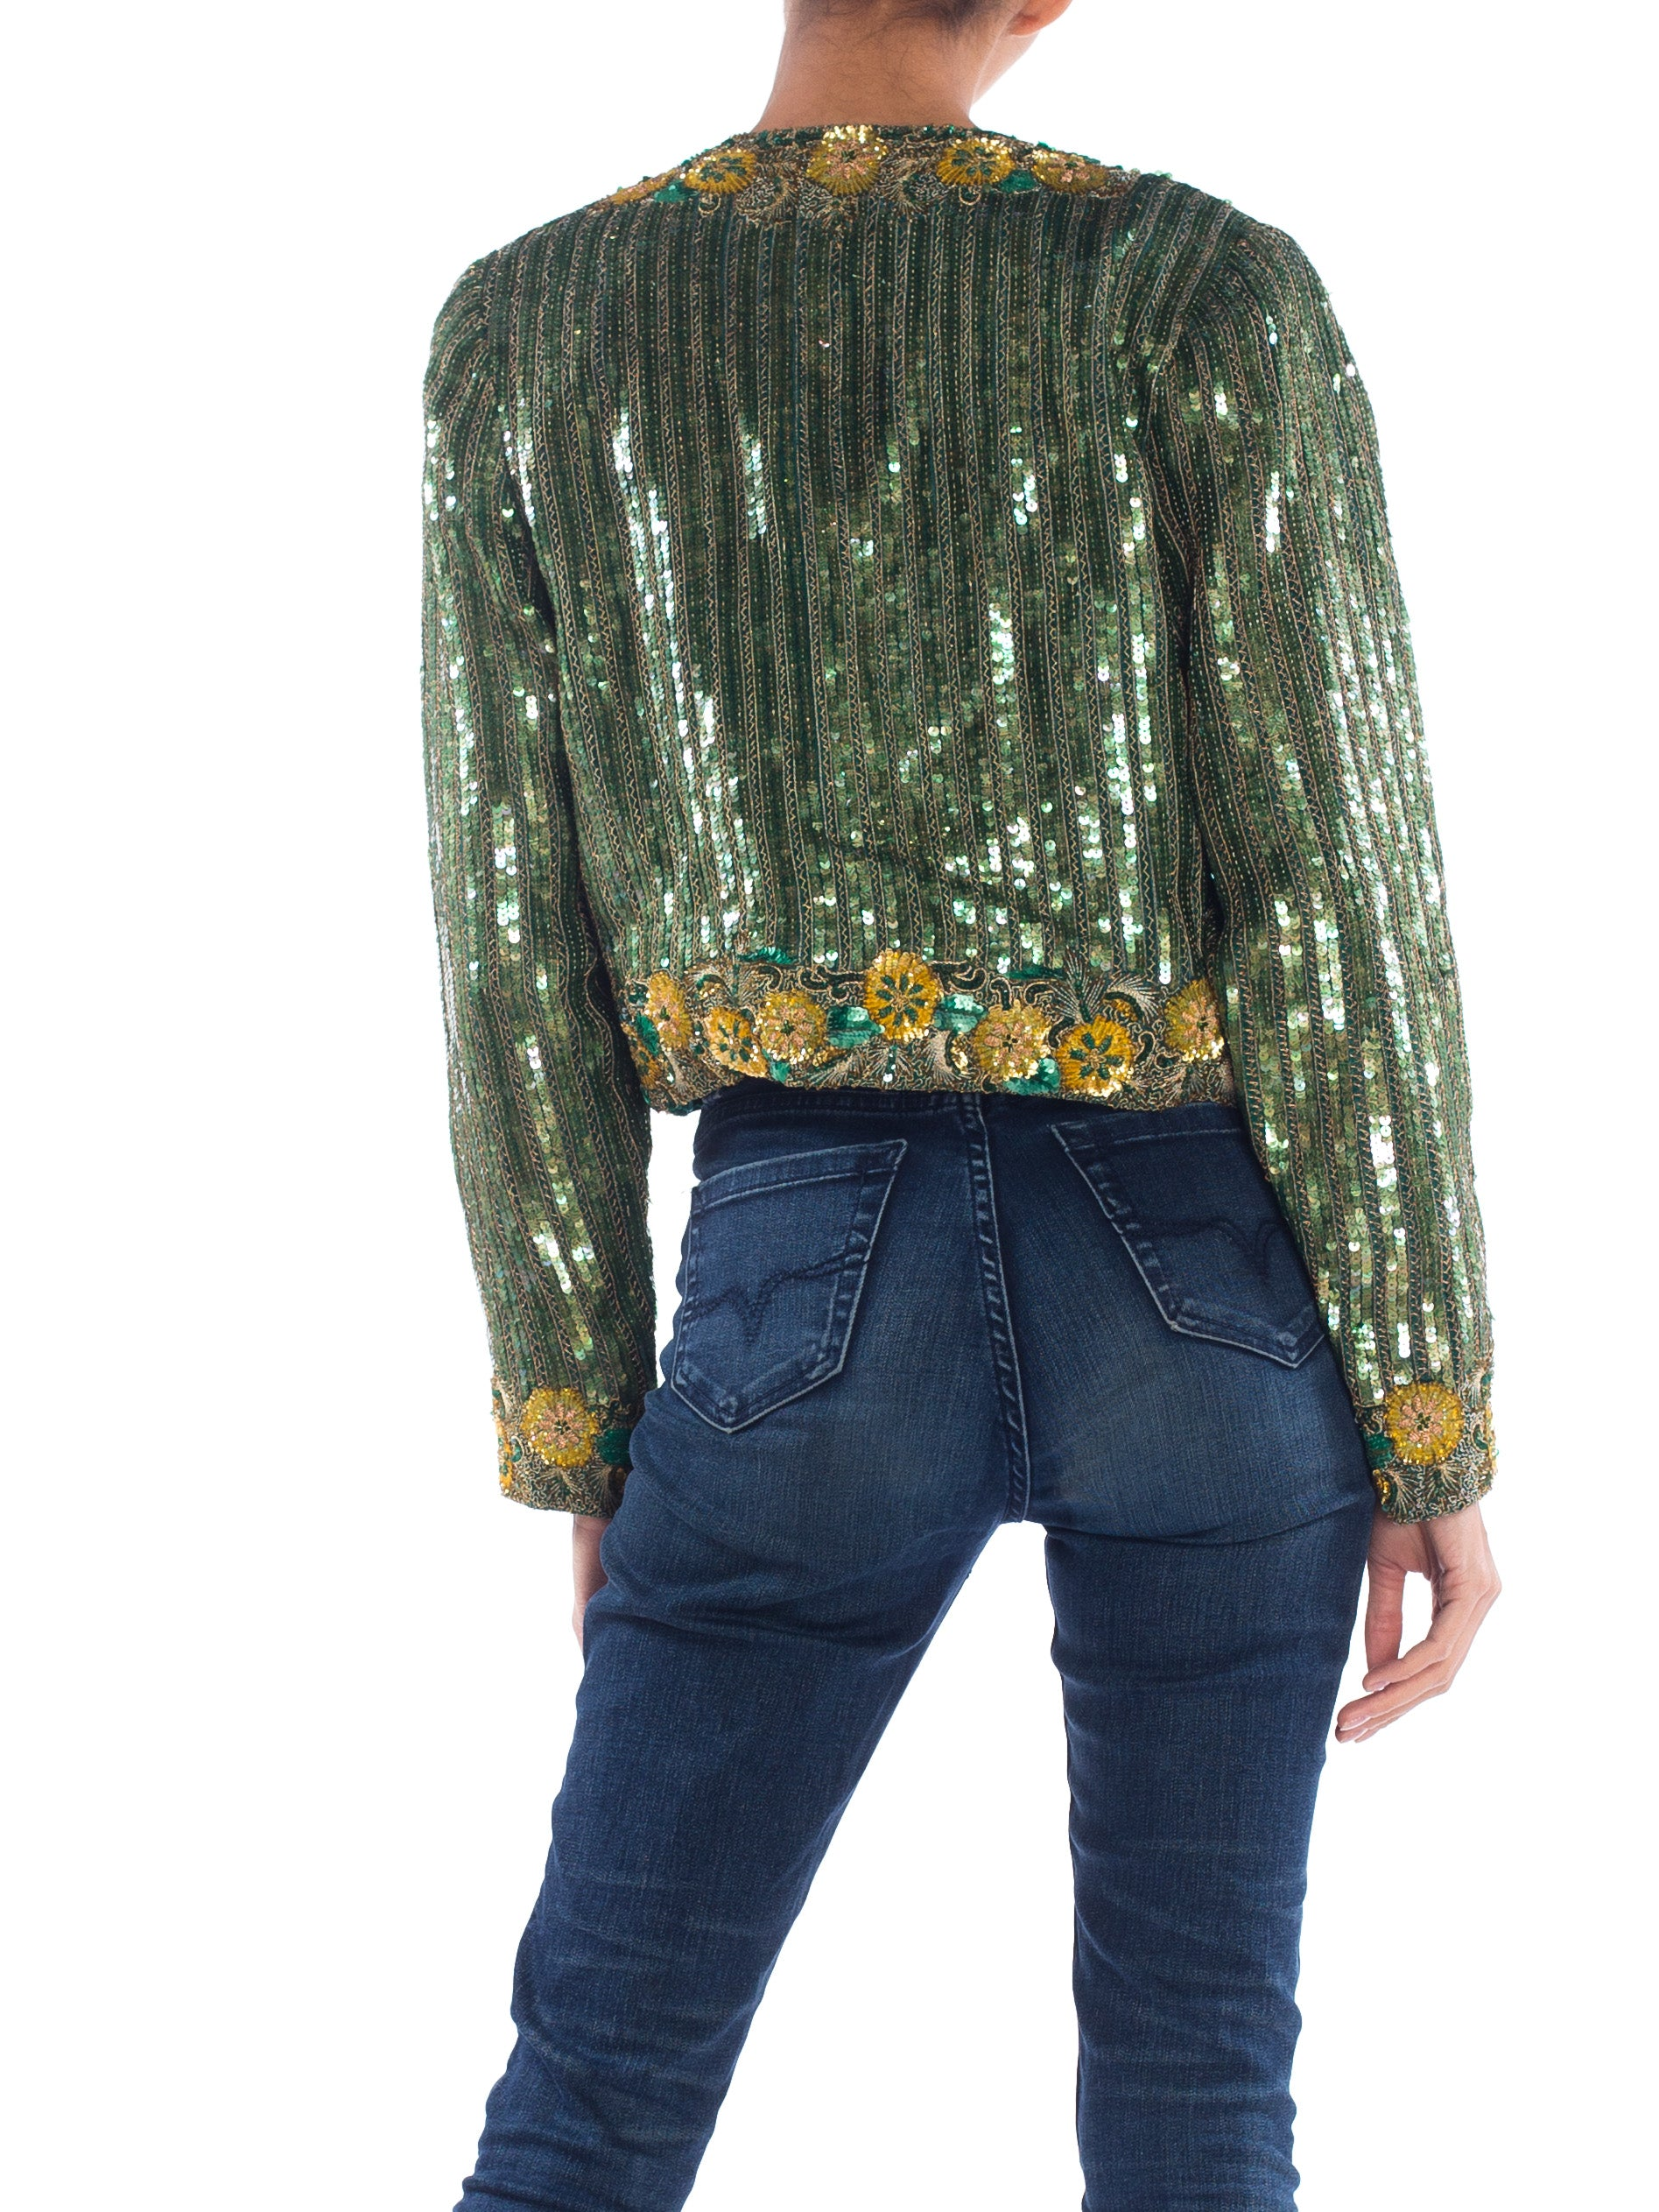 1980S Richilene Emerald Green Silk Jacket Beaded With Gold Flowers & Embroidery